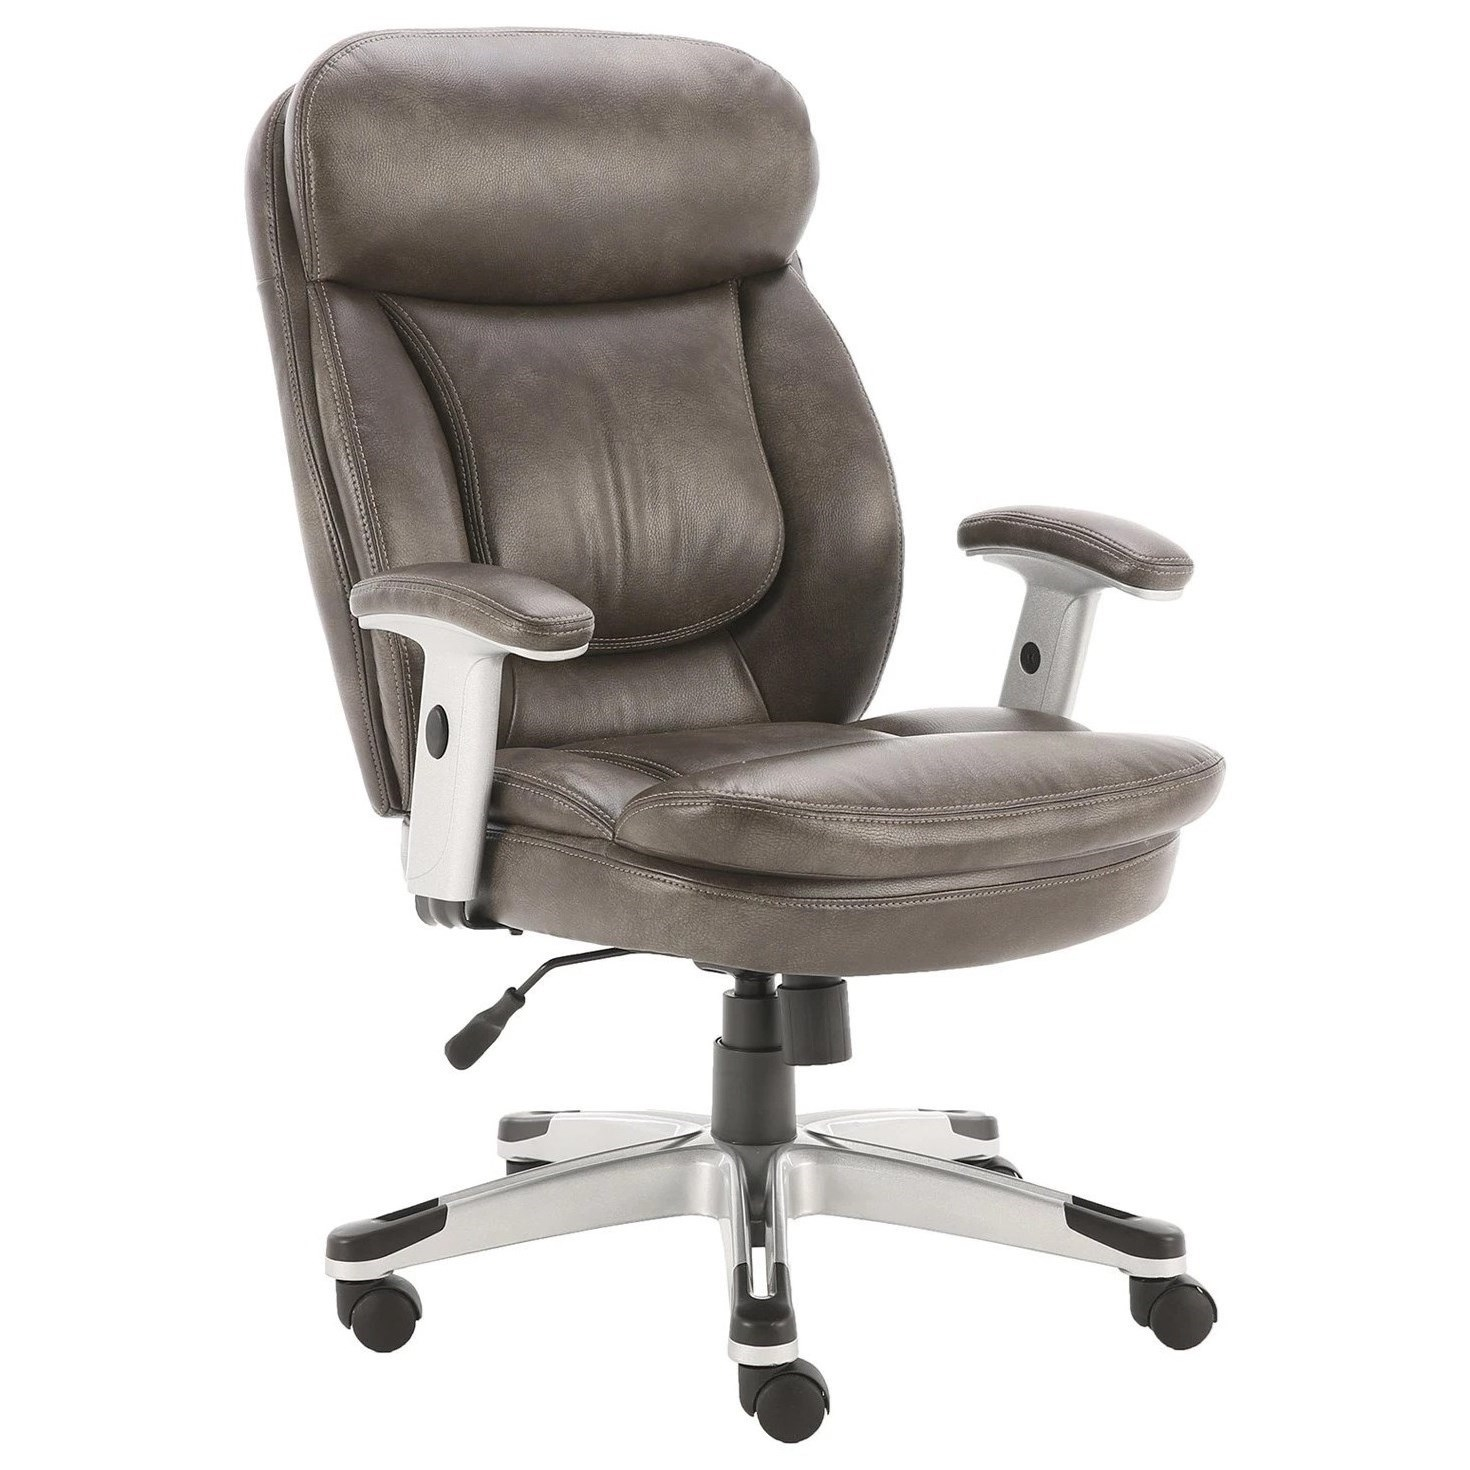 Desk Chairs Desk Chair by Parker Living at Simply Home by Lindy's